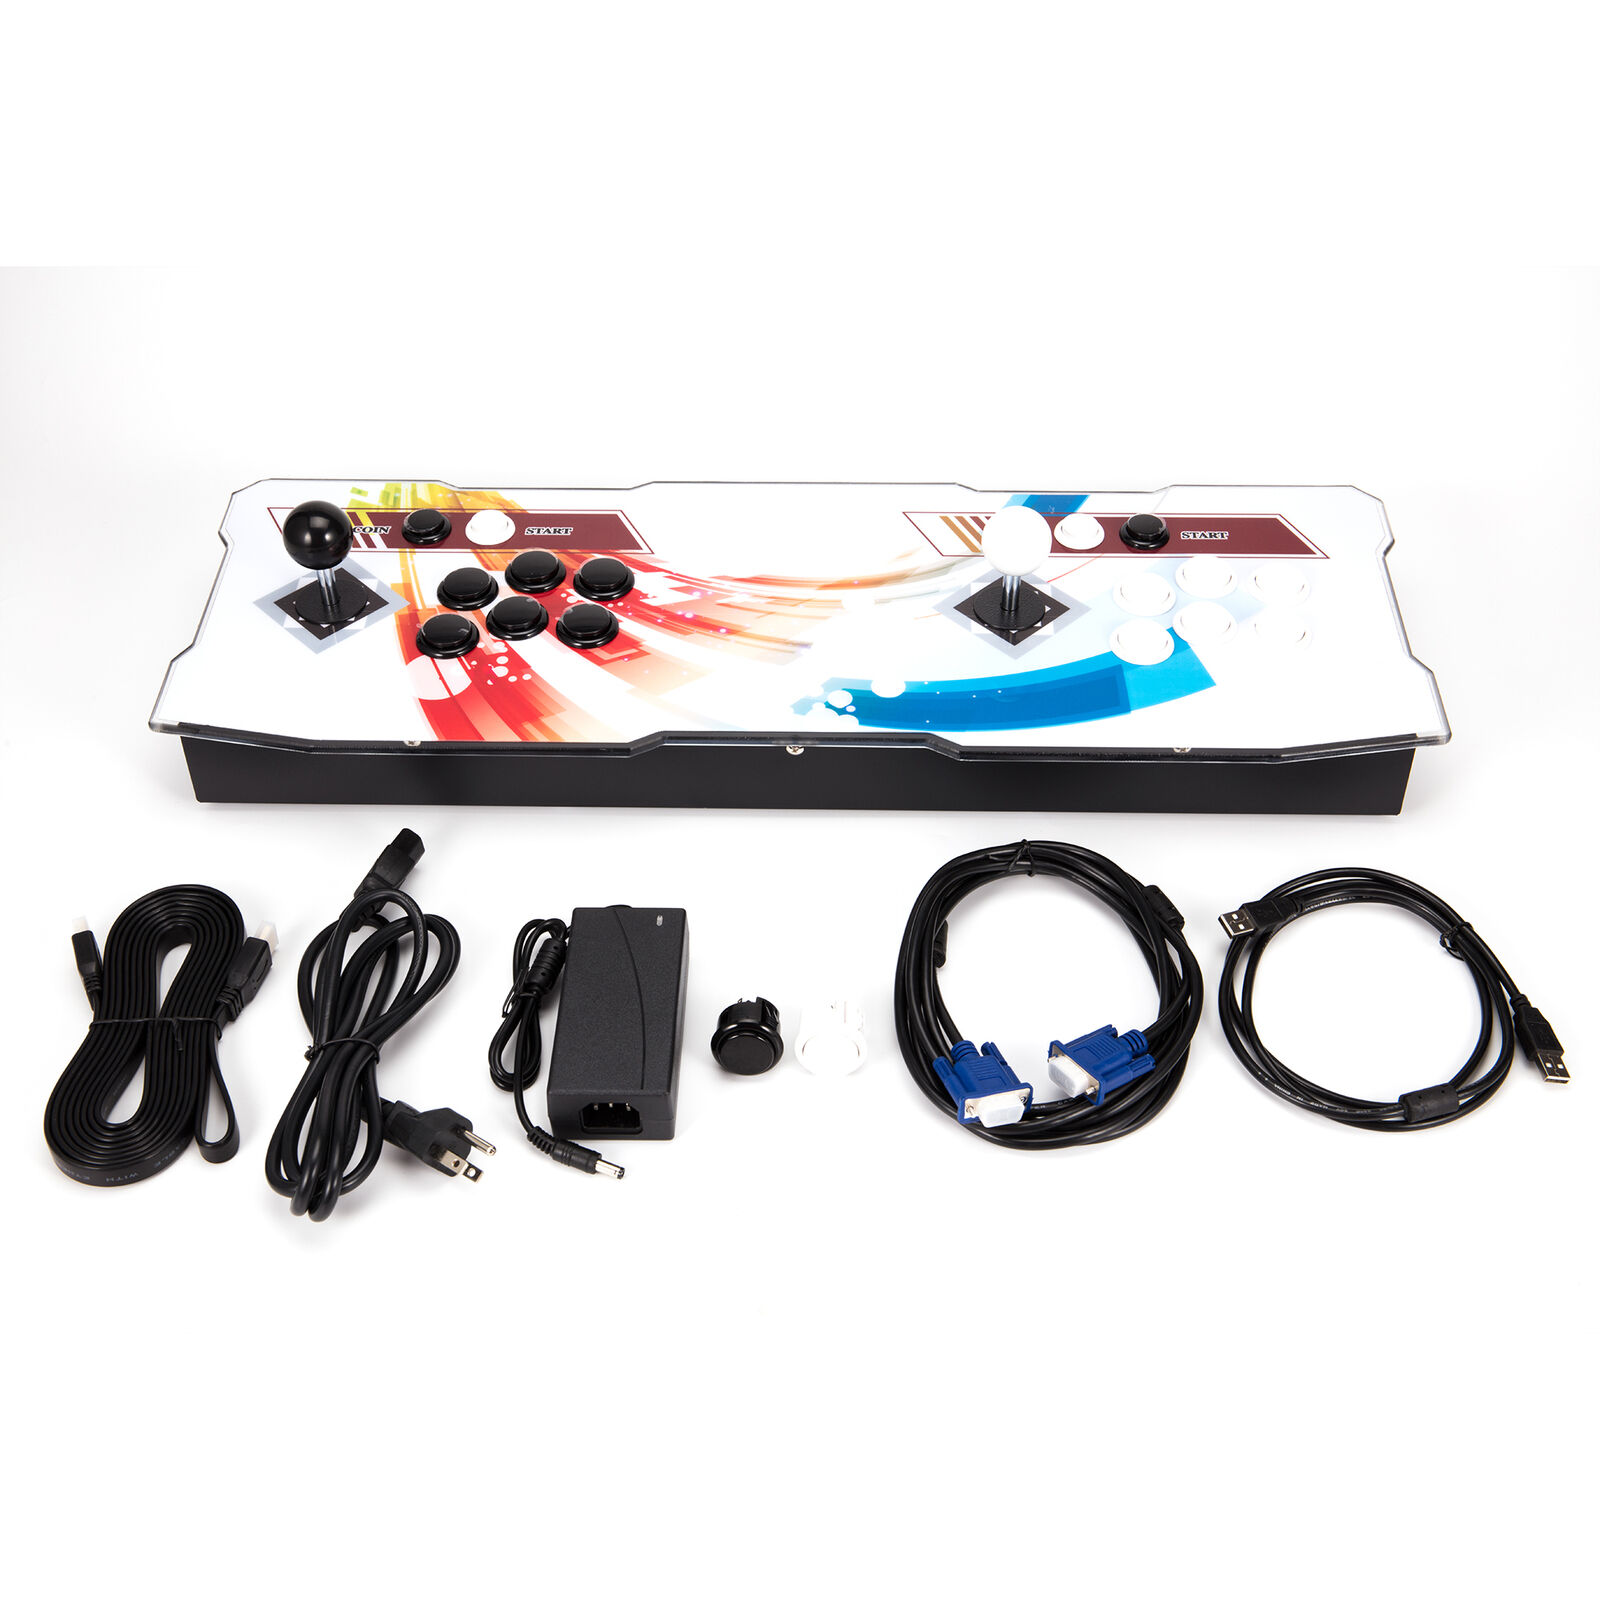 Pandora-Box-3D-2448-Games-in-1-Retro-Video-Games-2-player-Arcade-Console-Support thumbnail 2